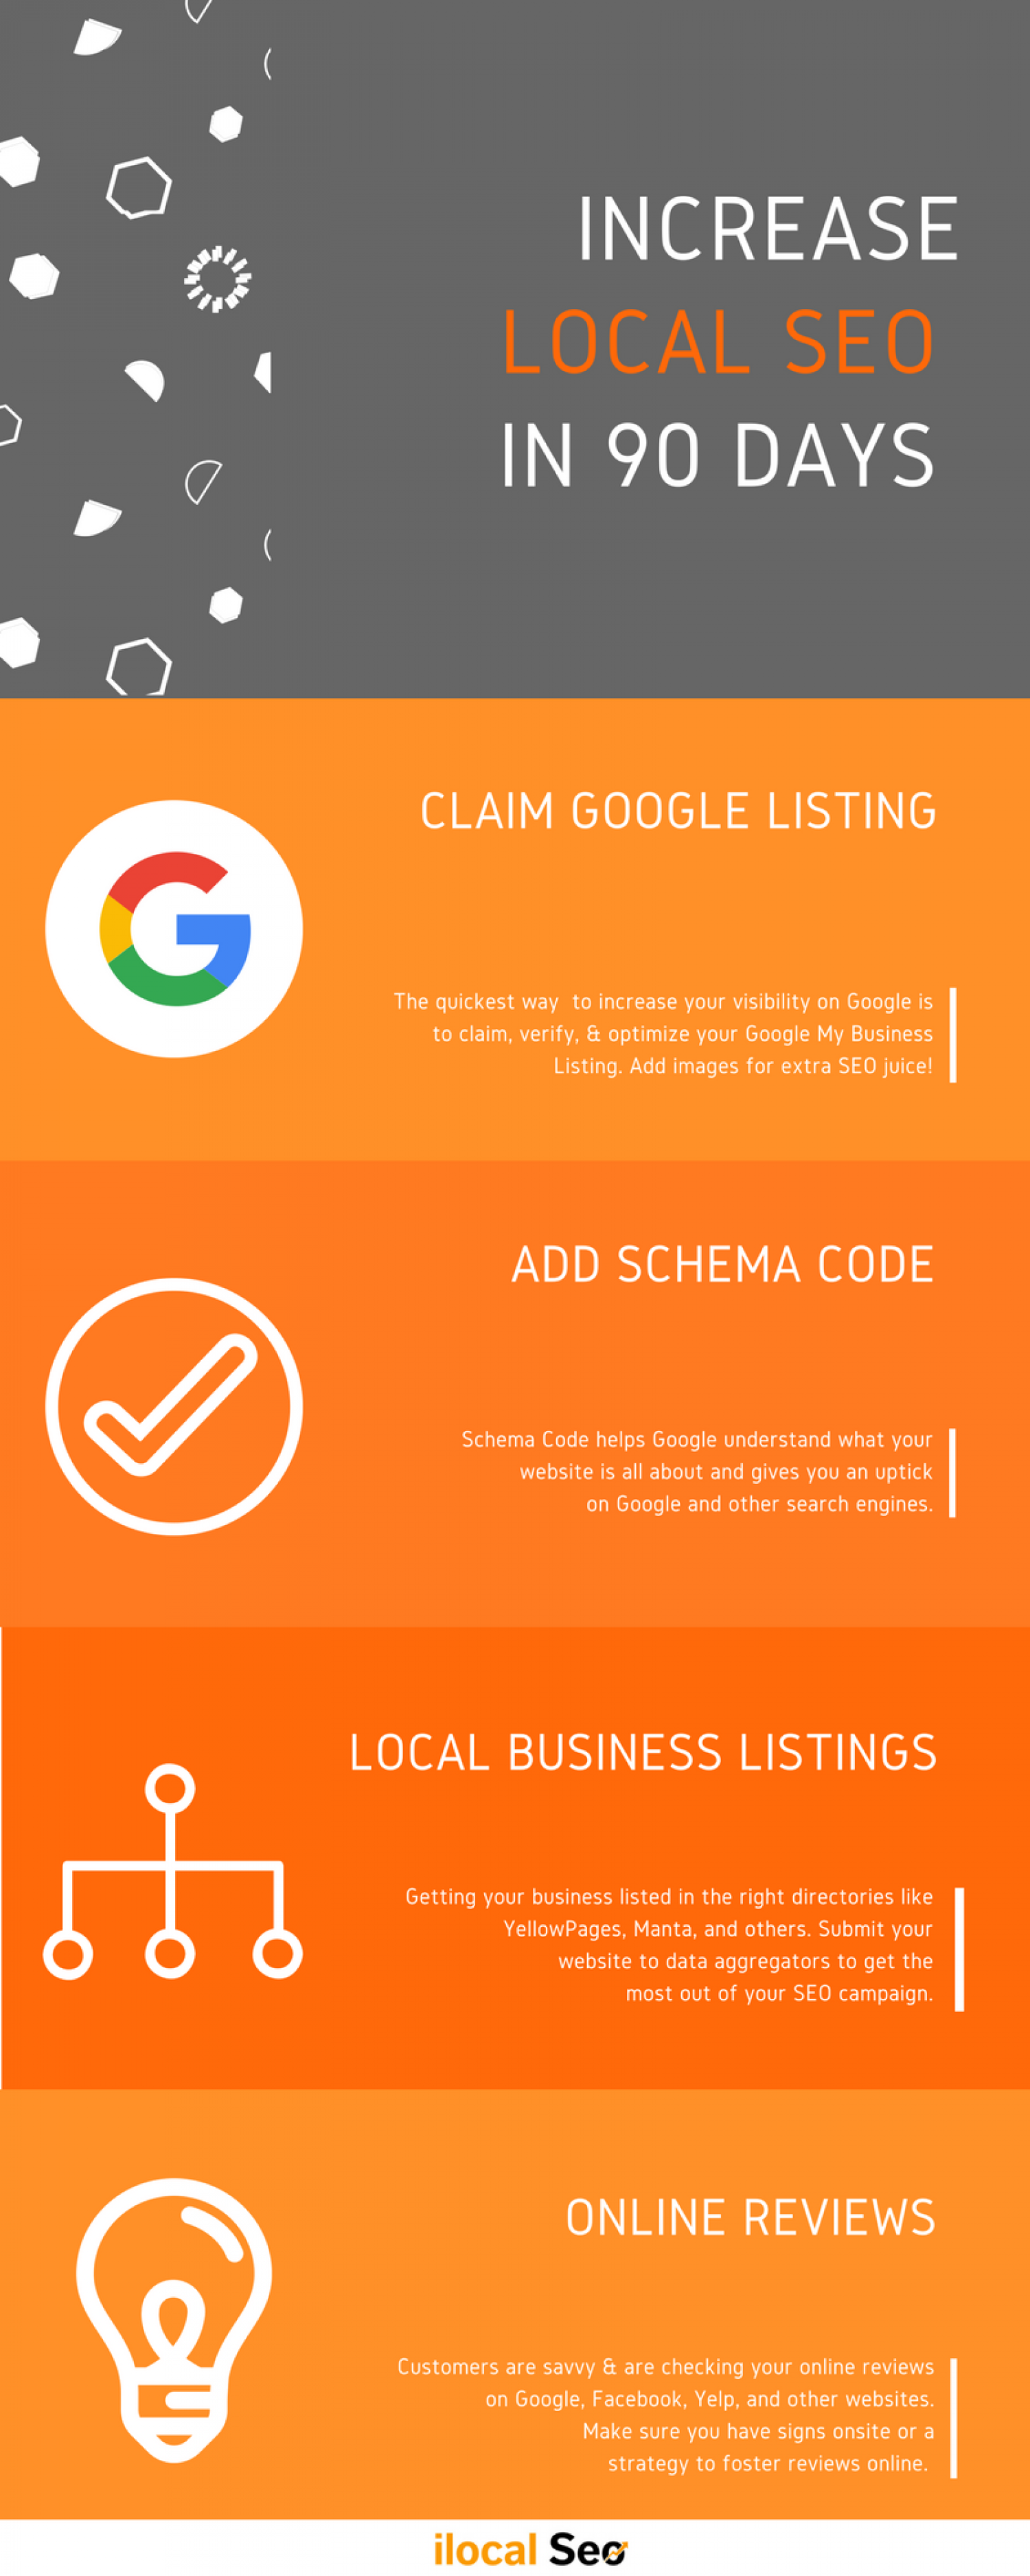 Increase Local SEO Rankings in 90 Days Infographic